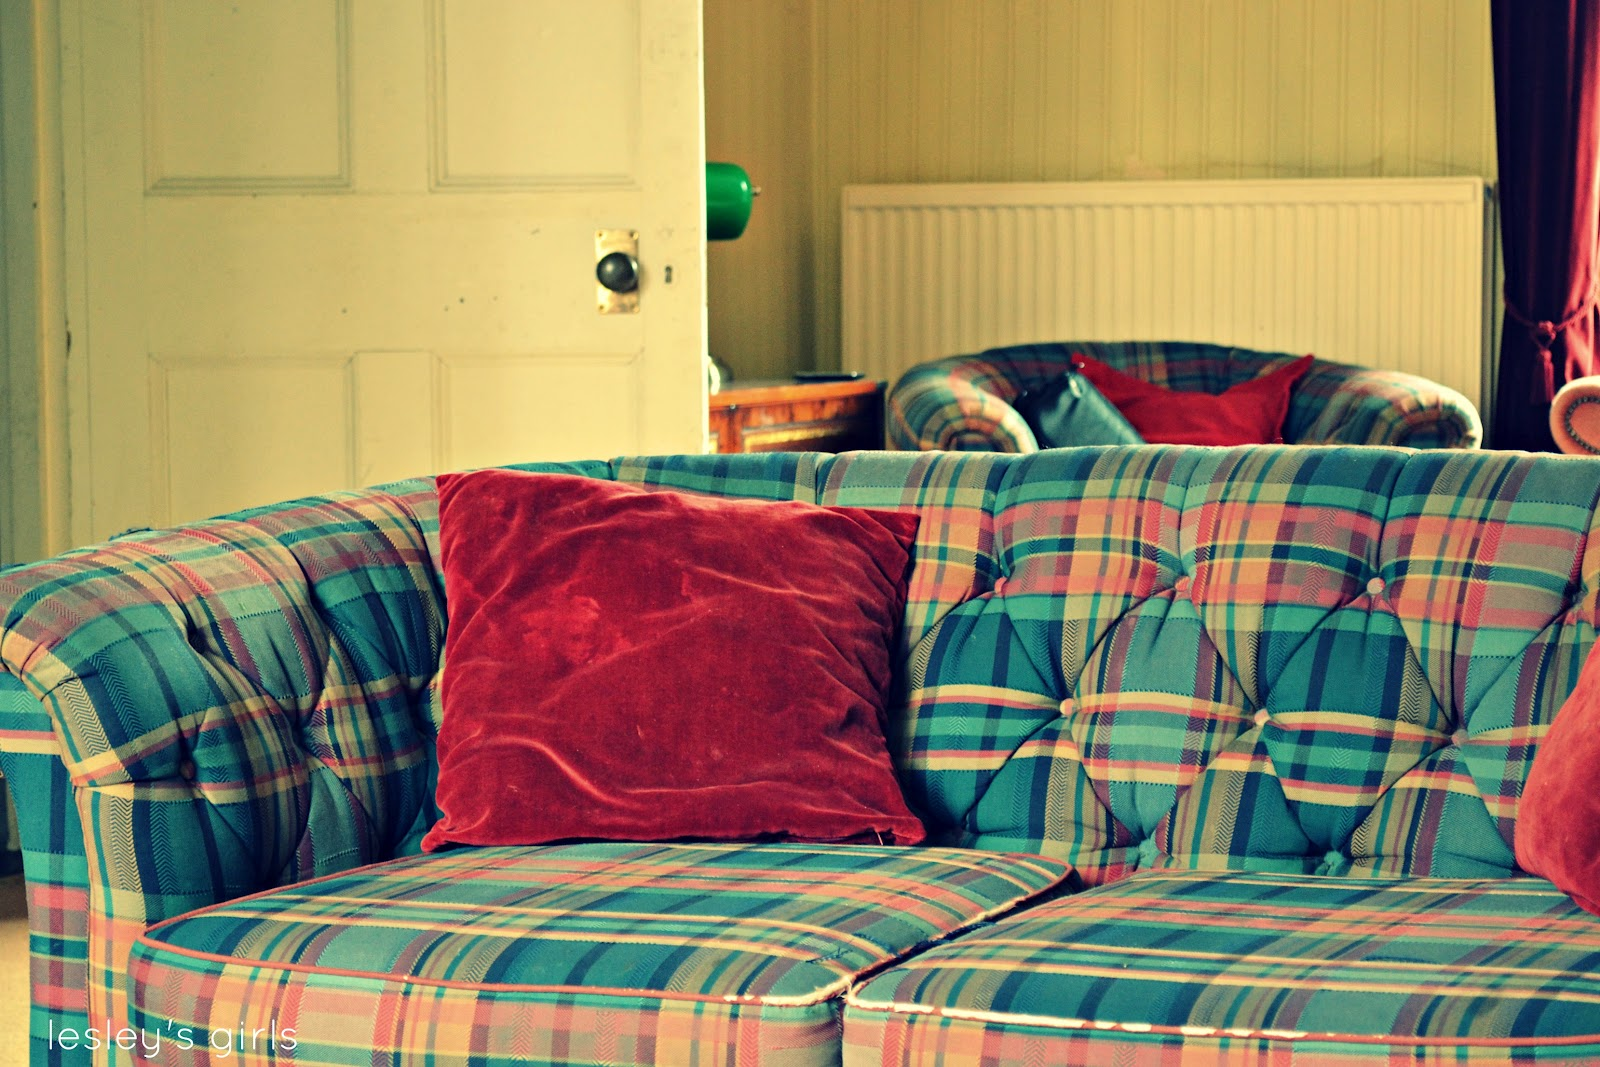 Reproduction Vintage Style Chesterfield Sofa And Armchair In Tartan From  Emmaus In Colchester For £30 For The Set (including A Footstool)